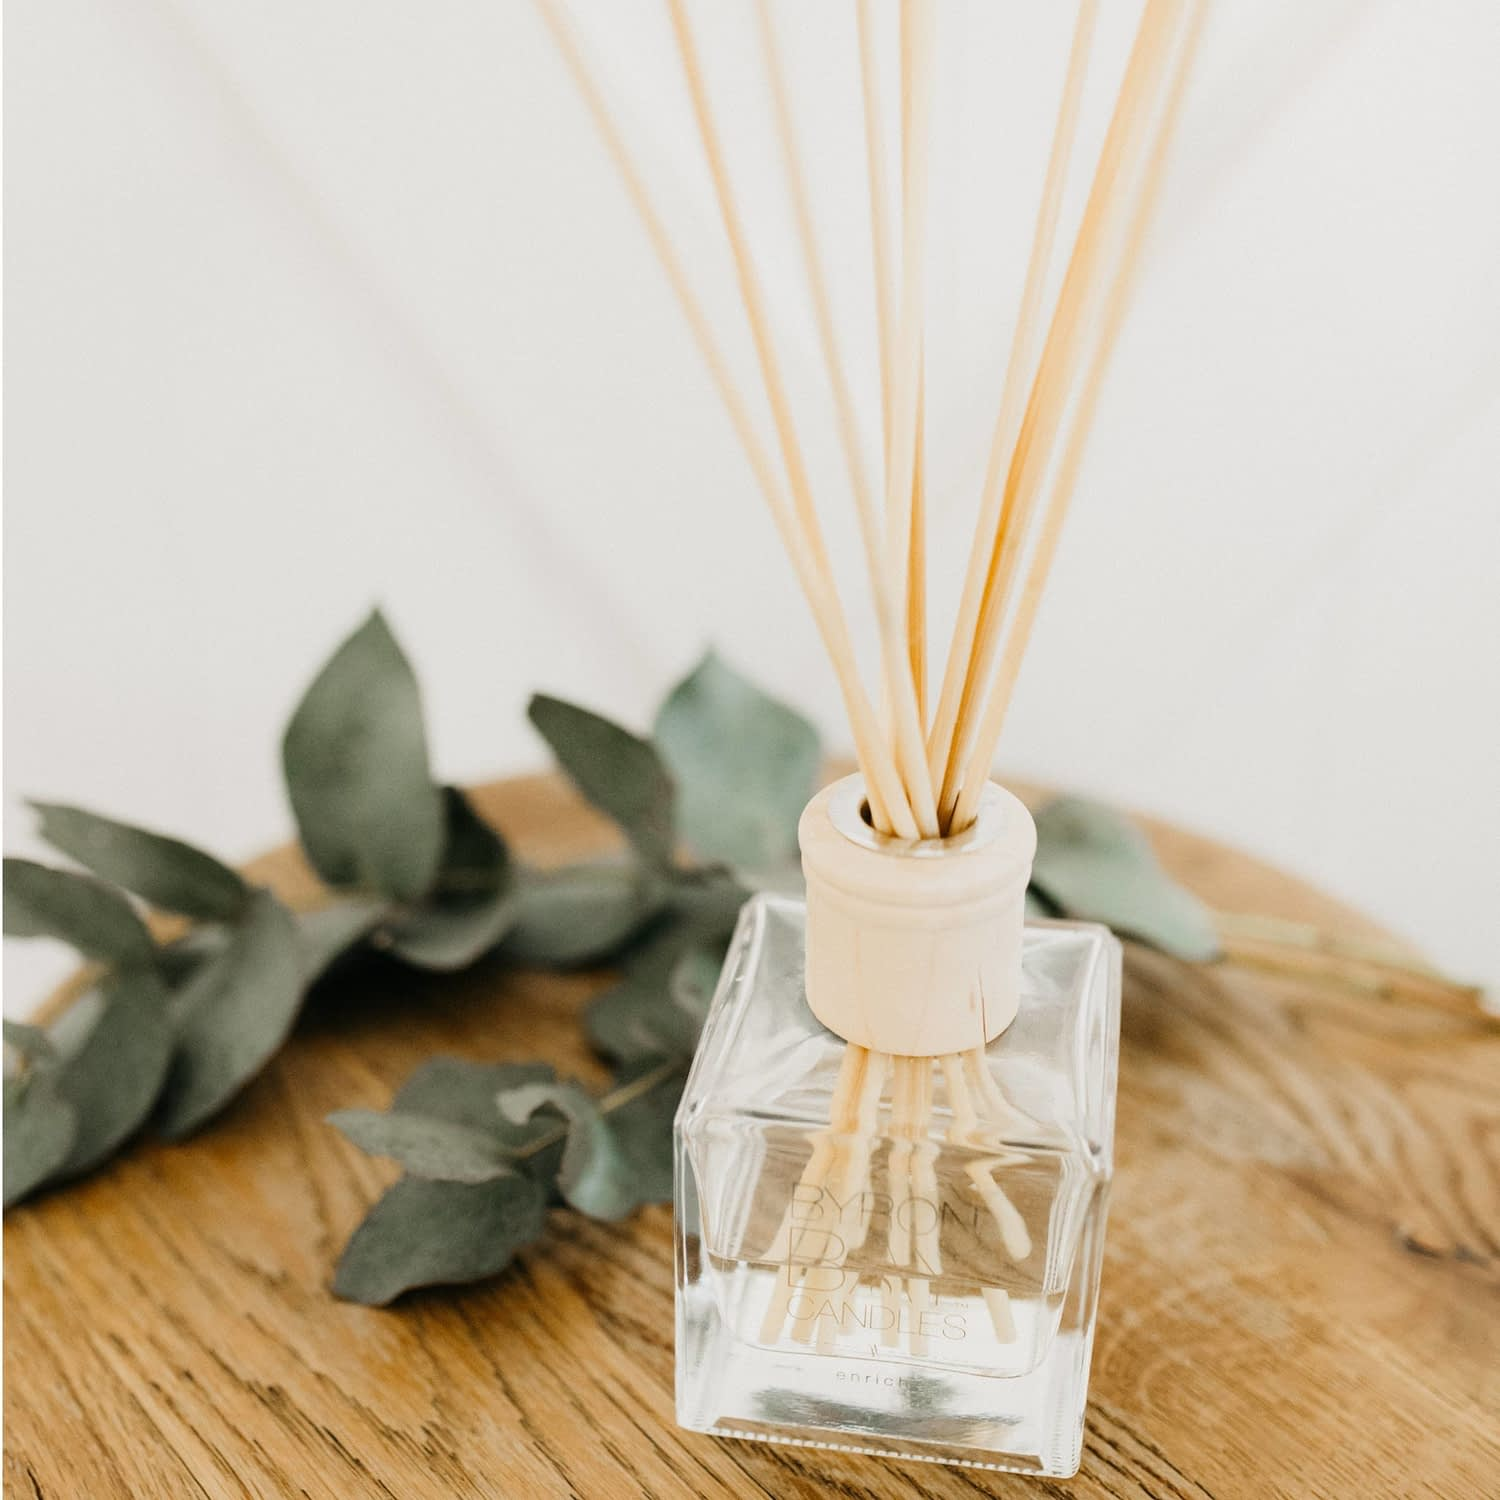 Byron_Bay_Candles_reed_diffuser_square